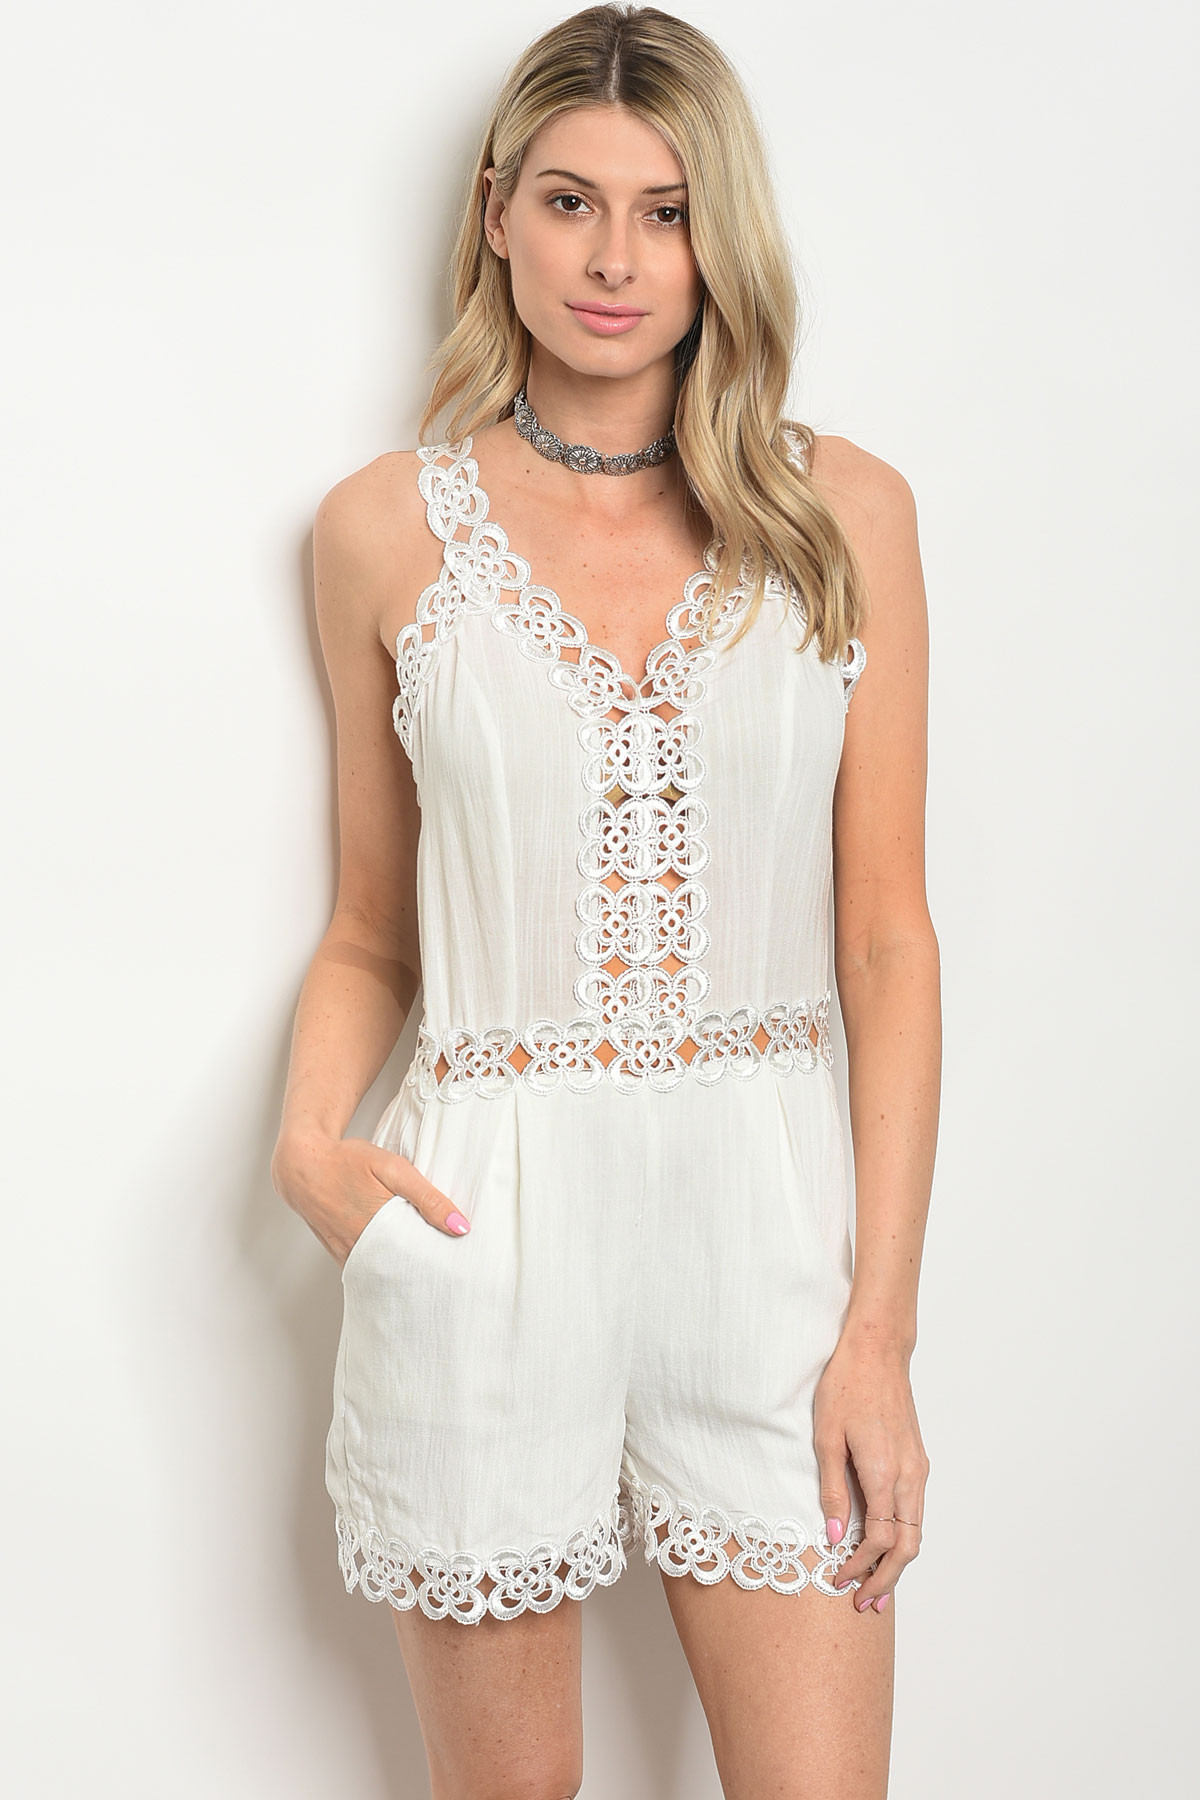 0bade8ed9bfe ... WHITE CROCHET ROMPER 2-2-2 · Larger Photo ...